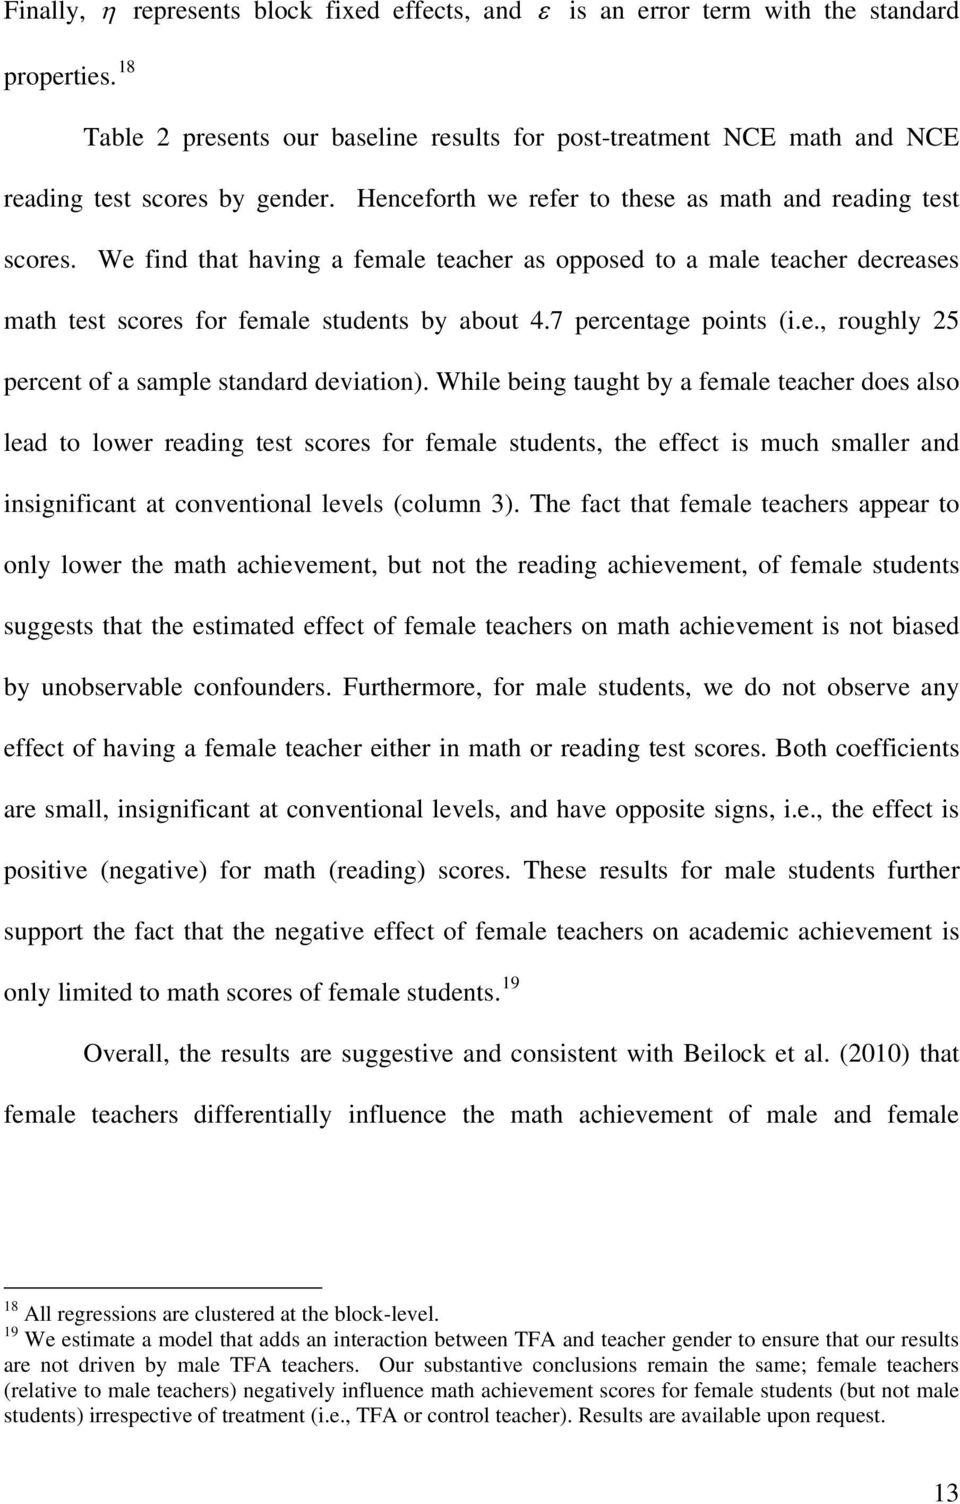 We find that having a female teacher as opposed to a male teacher decreases math test scores for female students by about 4.7 percentage points (i.e., roughly 25 percent of a sample standard deviation).